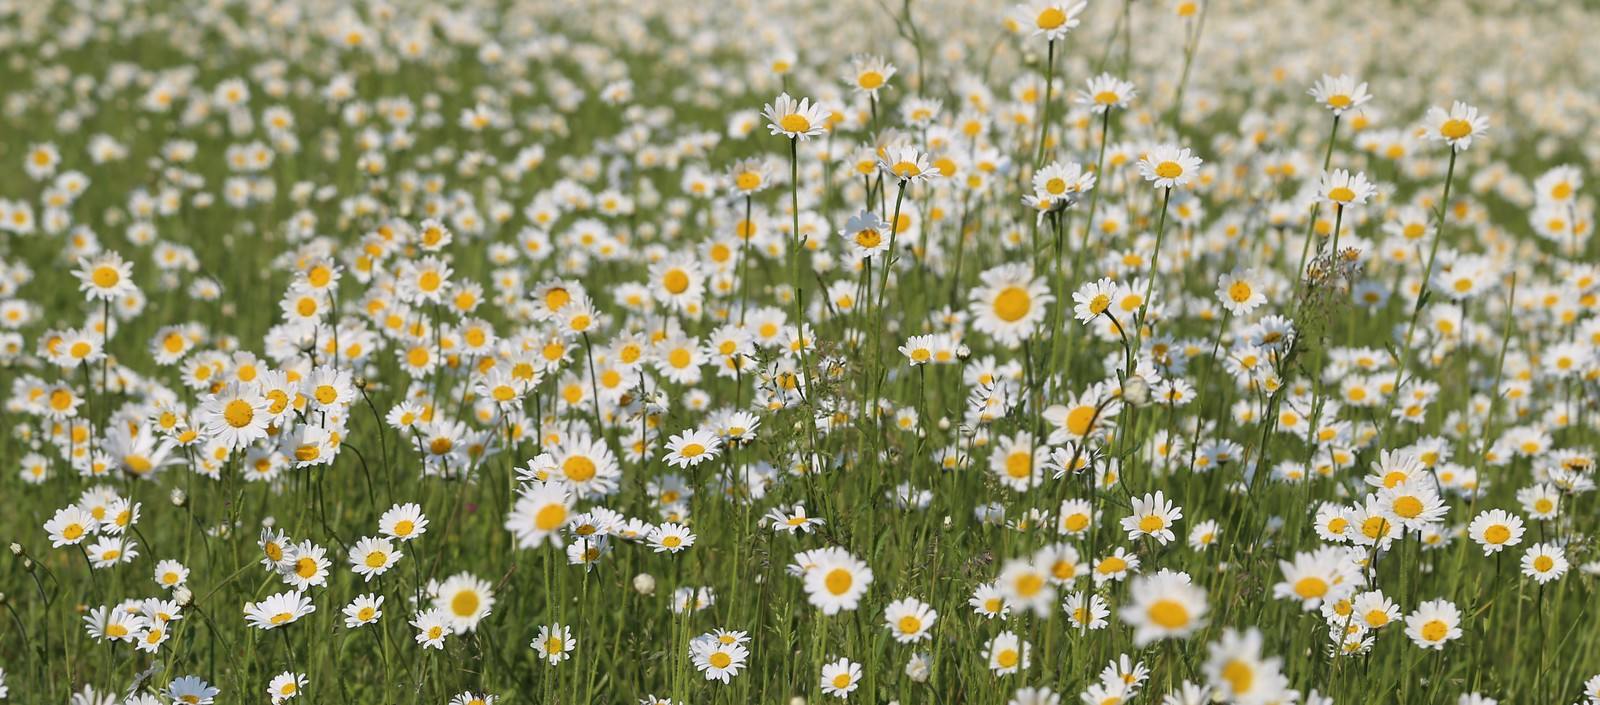 Ox-Eye Daisies - Otford to Eynsford Walk